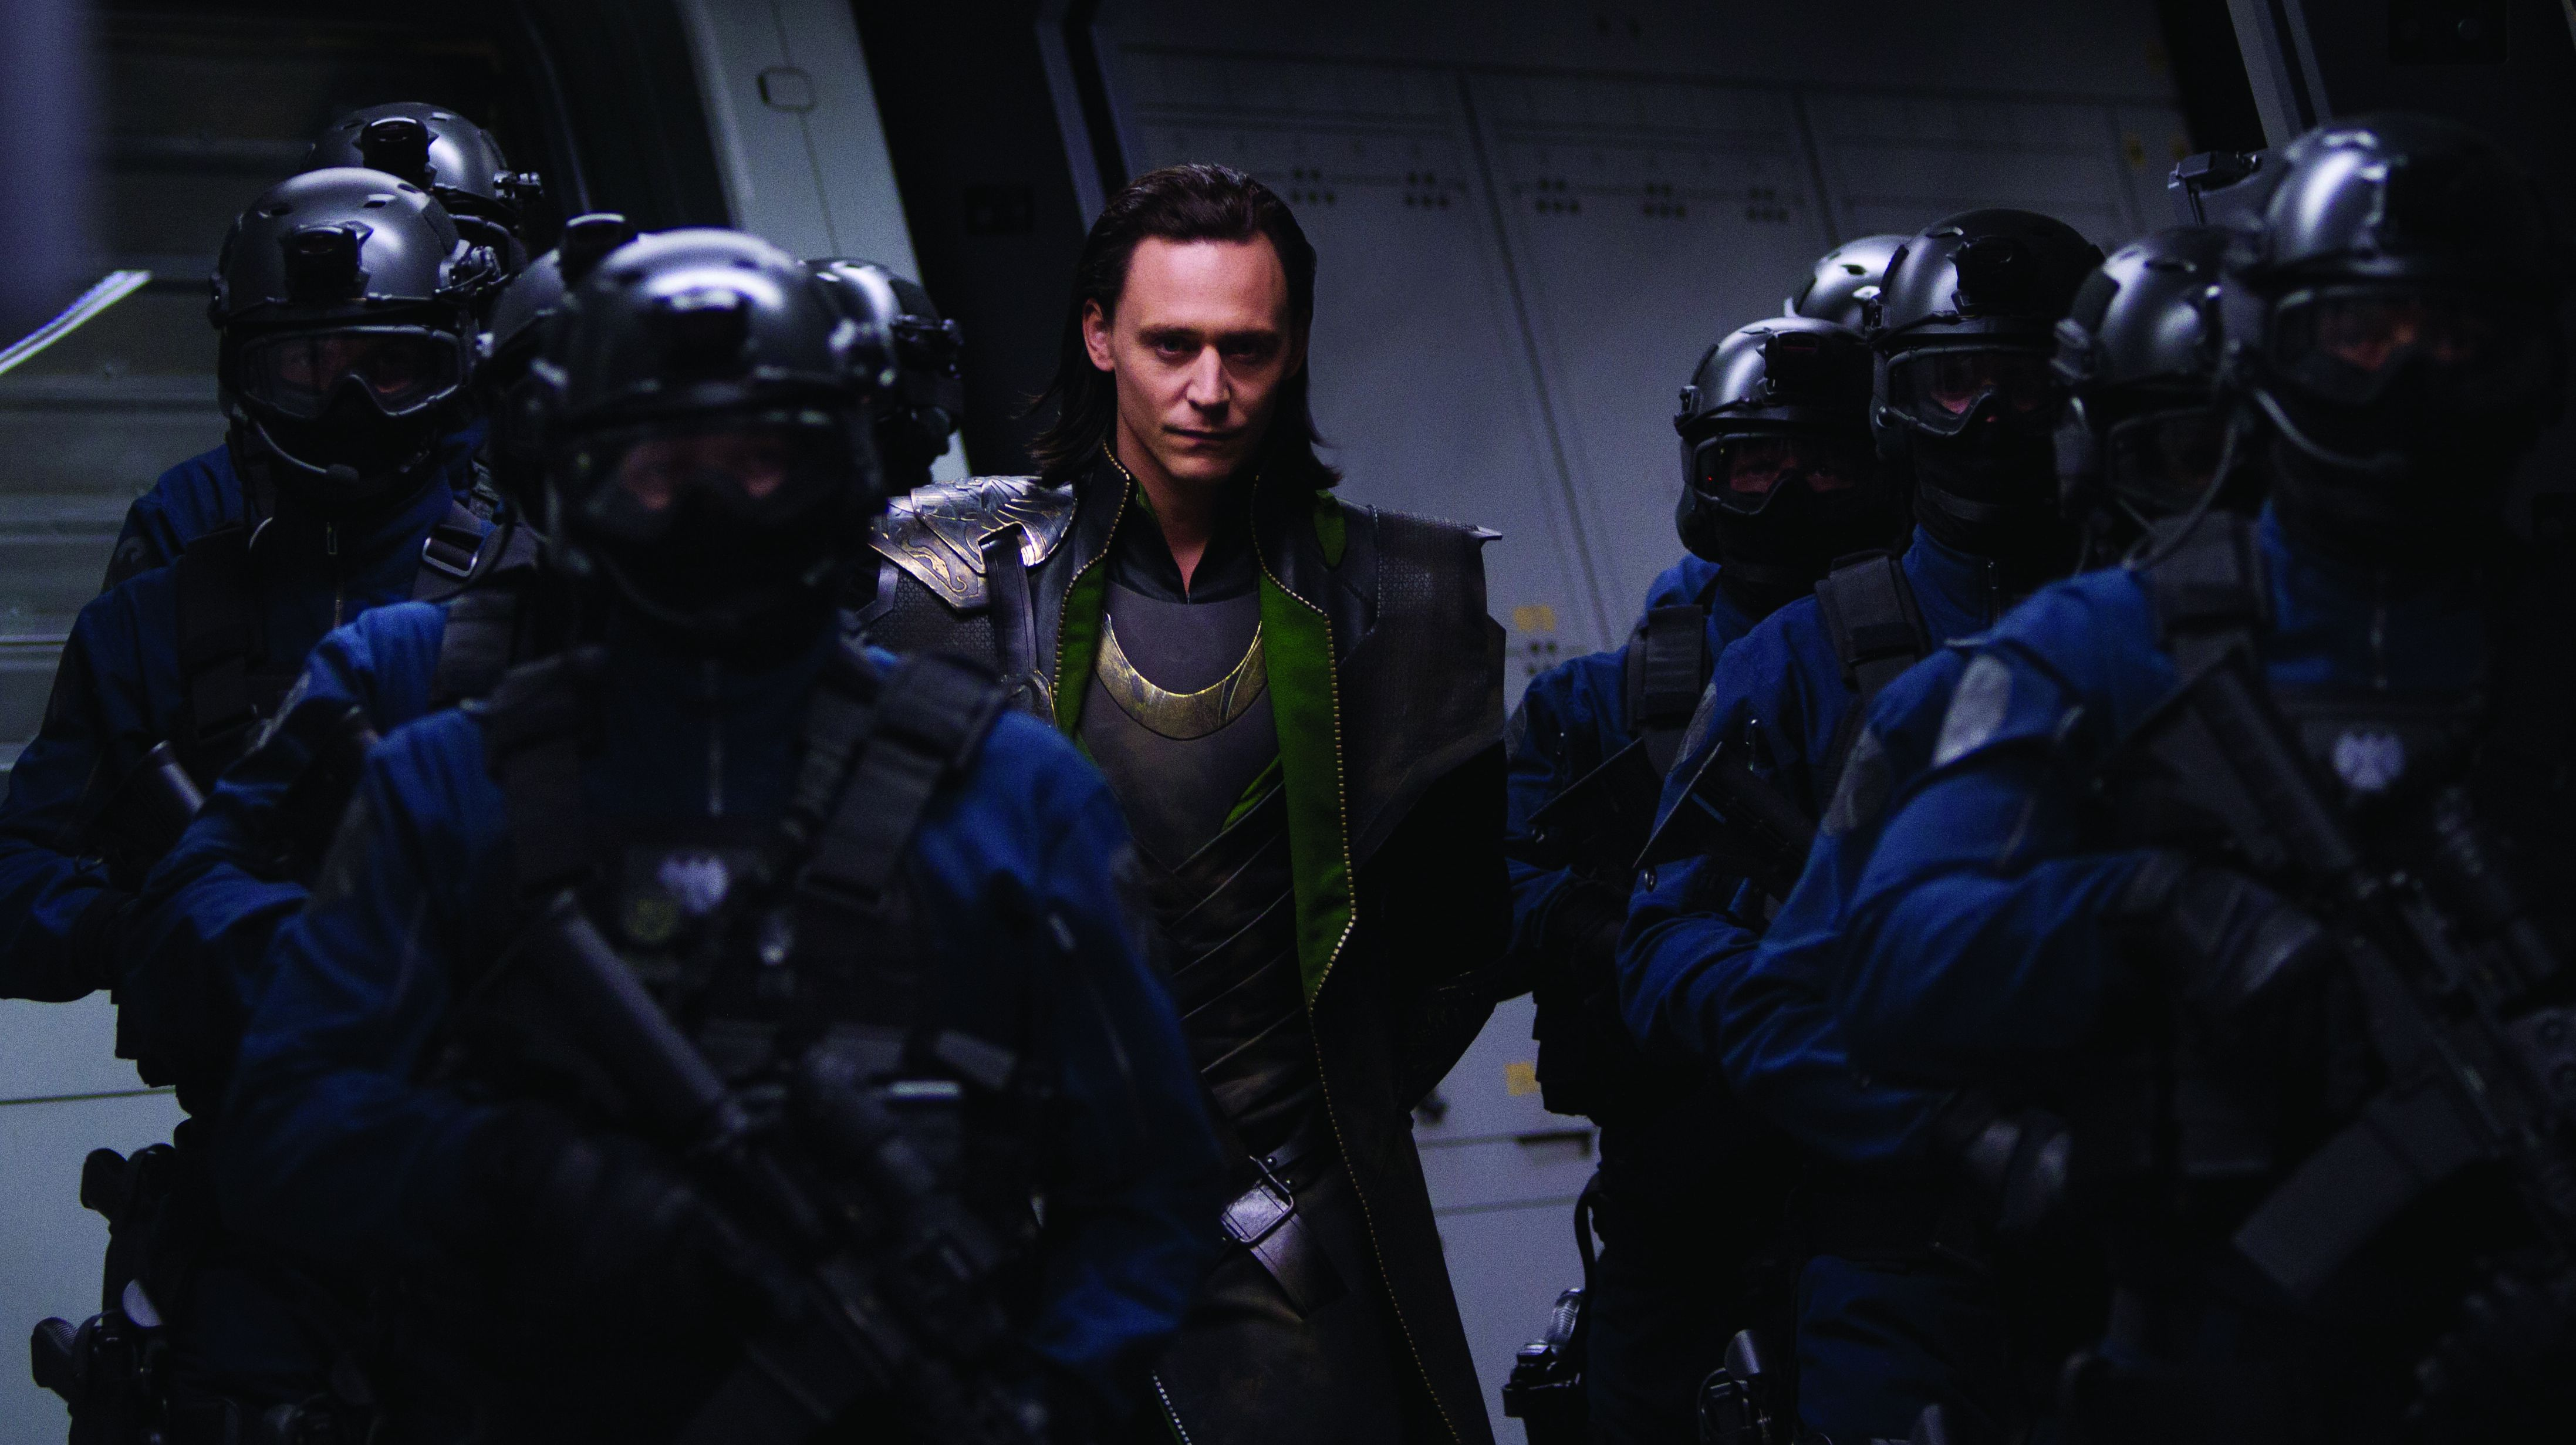 Tom Hiddleston closely guarded as Loki in The Avengers